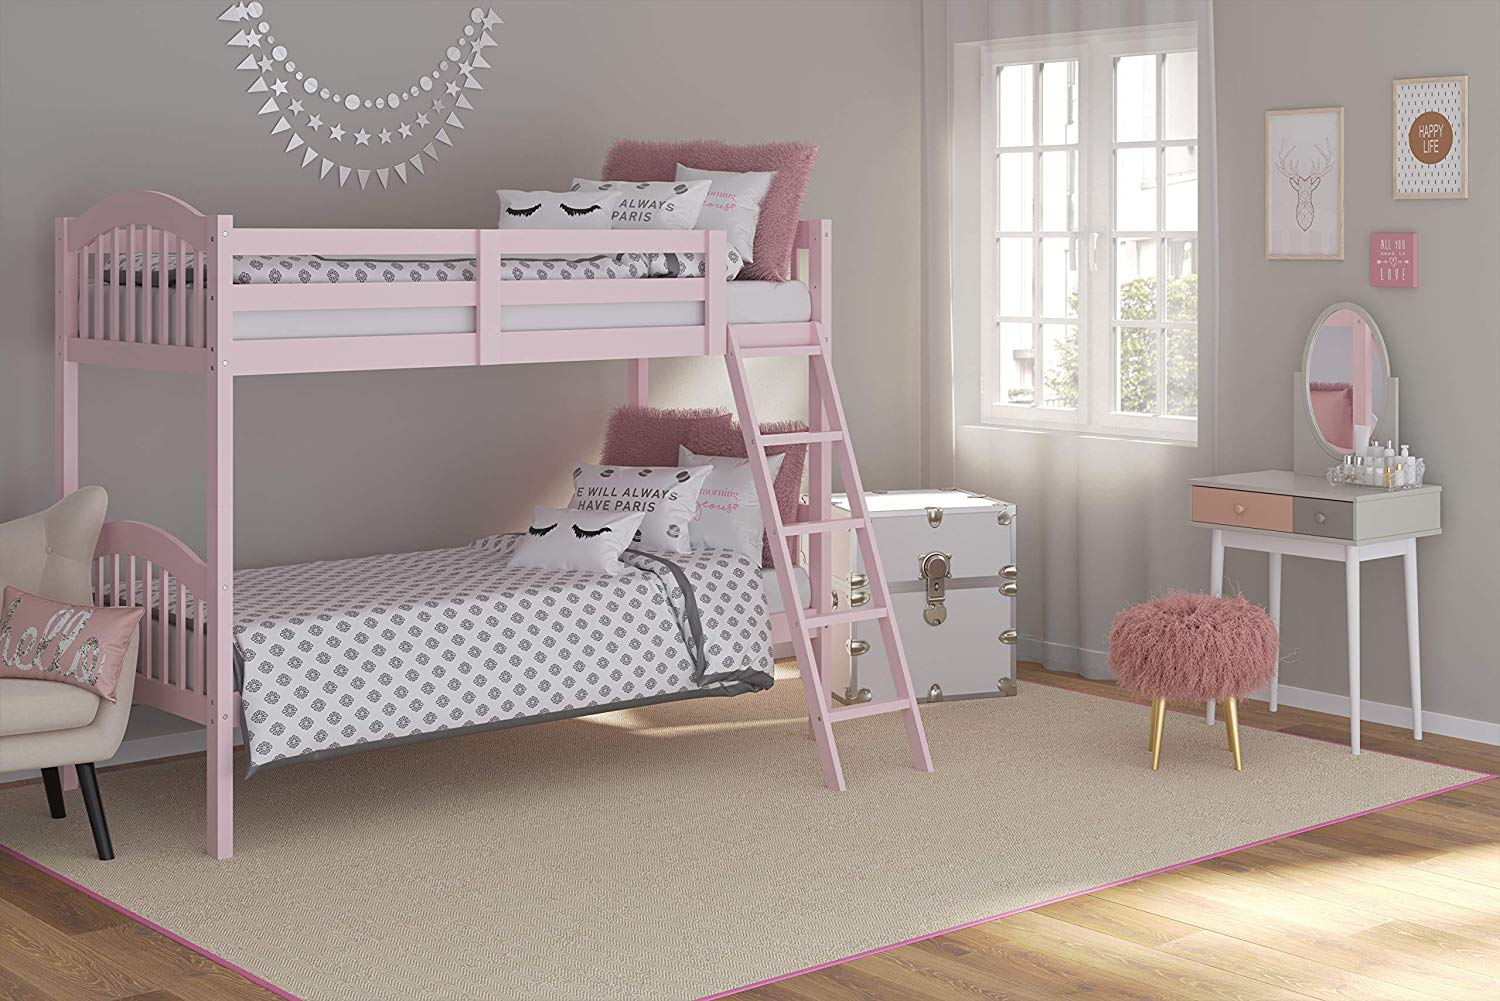 Pink Twin Bunk Beds for Kids with Ladder and Safety Rail by Storkcraft